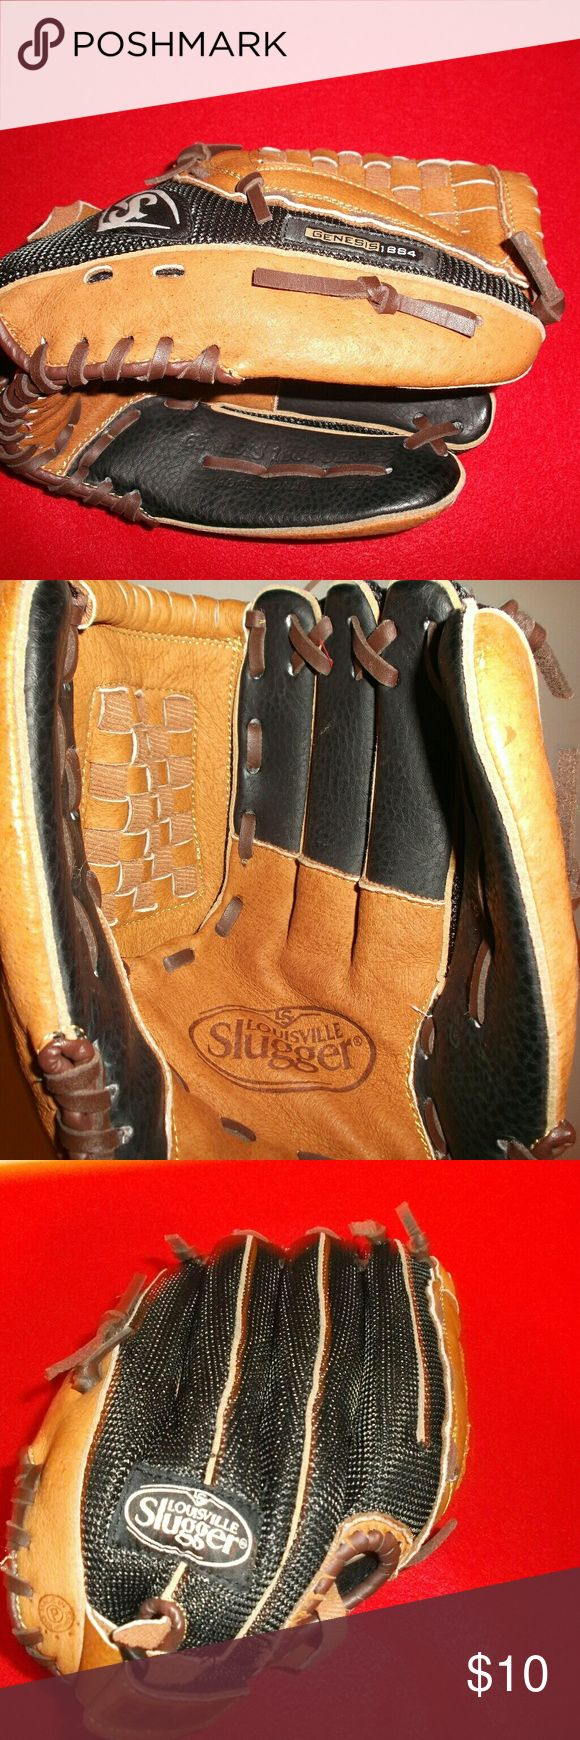 """Louisville Slugger Youth Baseball Glove Louisville Slugger Youth Baseball Glove.   Worn on the left hand for right handed throwers   The model is Genesis 1884   Feels like a leather material with nylon on the top   Excellent condition!   Estimated at a 9.5 """" glove.   It doesn't say and I might not be measuring in the official place. Louisville Slugger Other"""